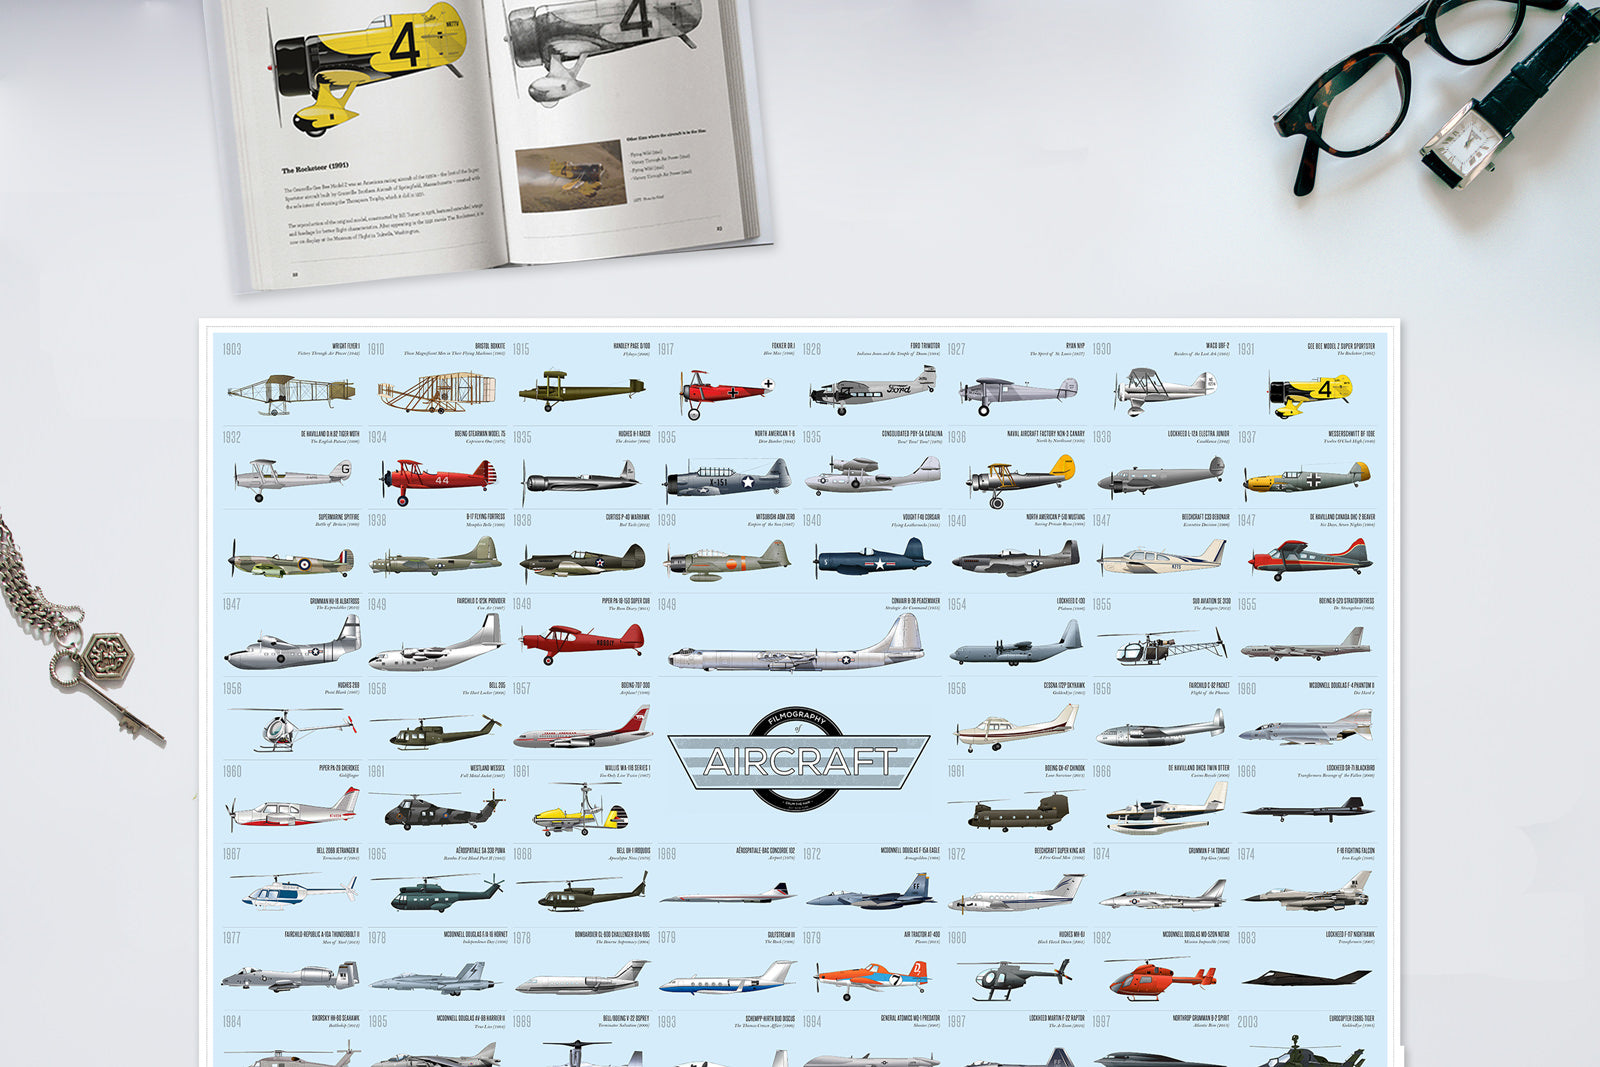 banner-The Filmography of Aircraft - Collector's Book